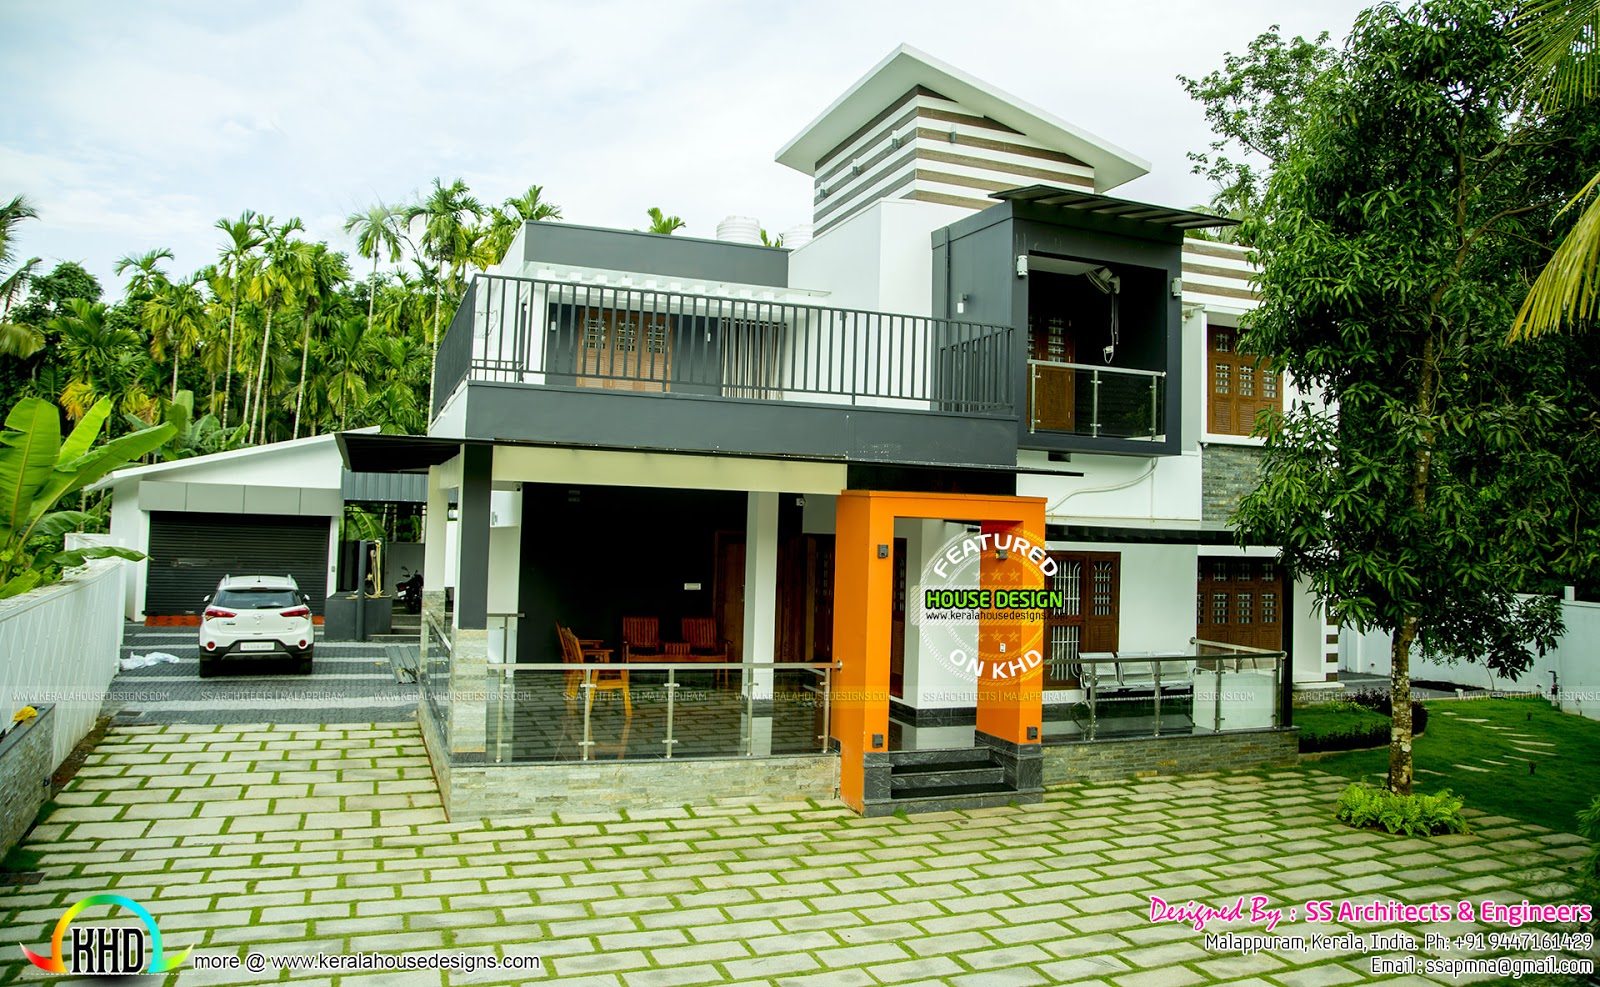 Interiors and exteriors of 5 bedroom contemporary home for Contemporary home designs kerala